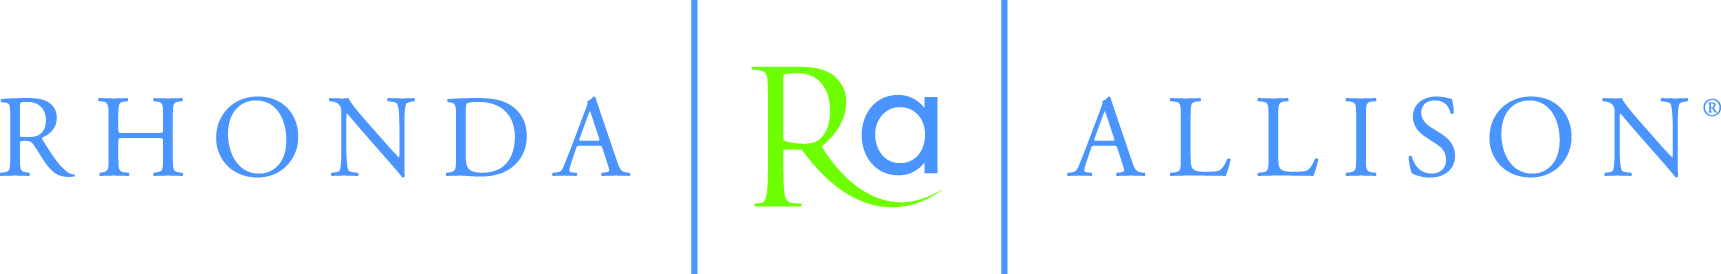 Rhonda_Allison_Logo_-_Color.jpg